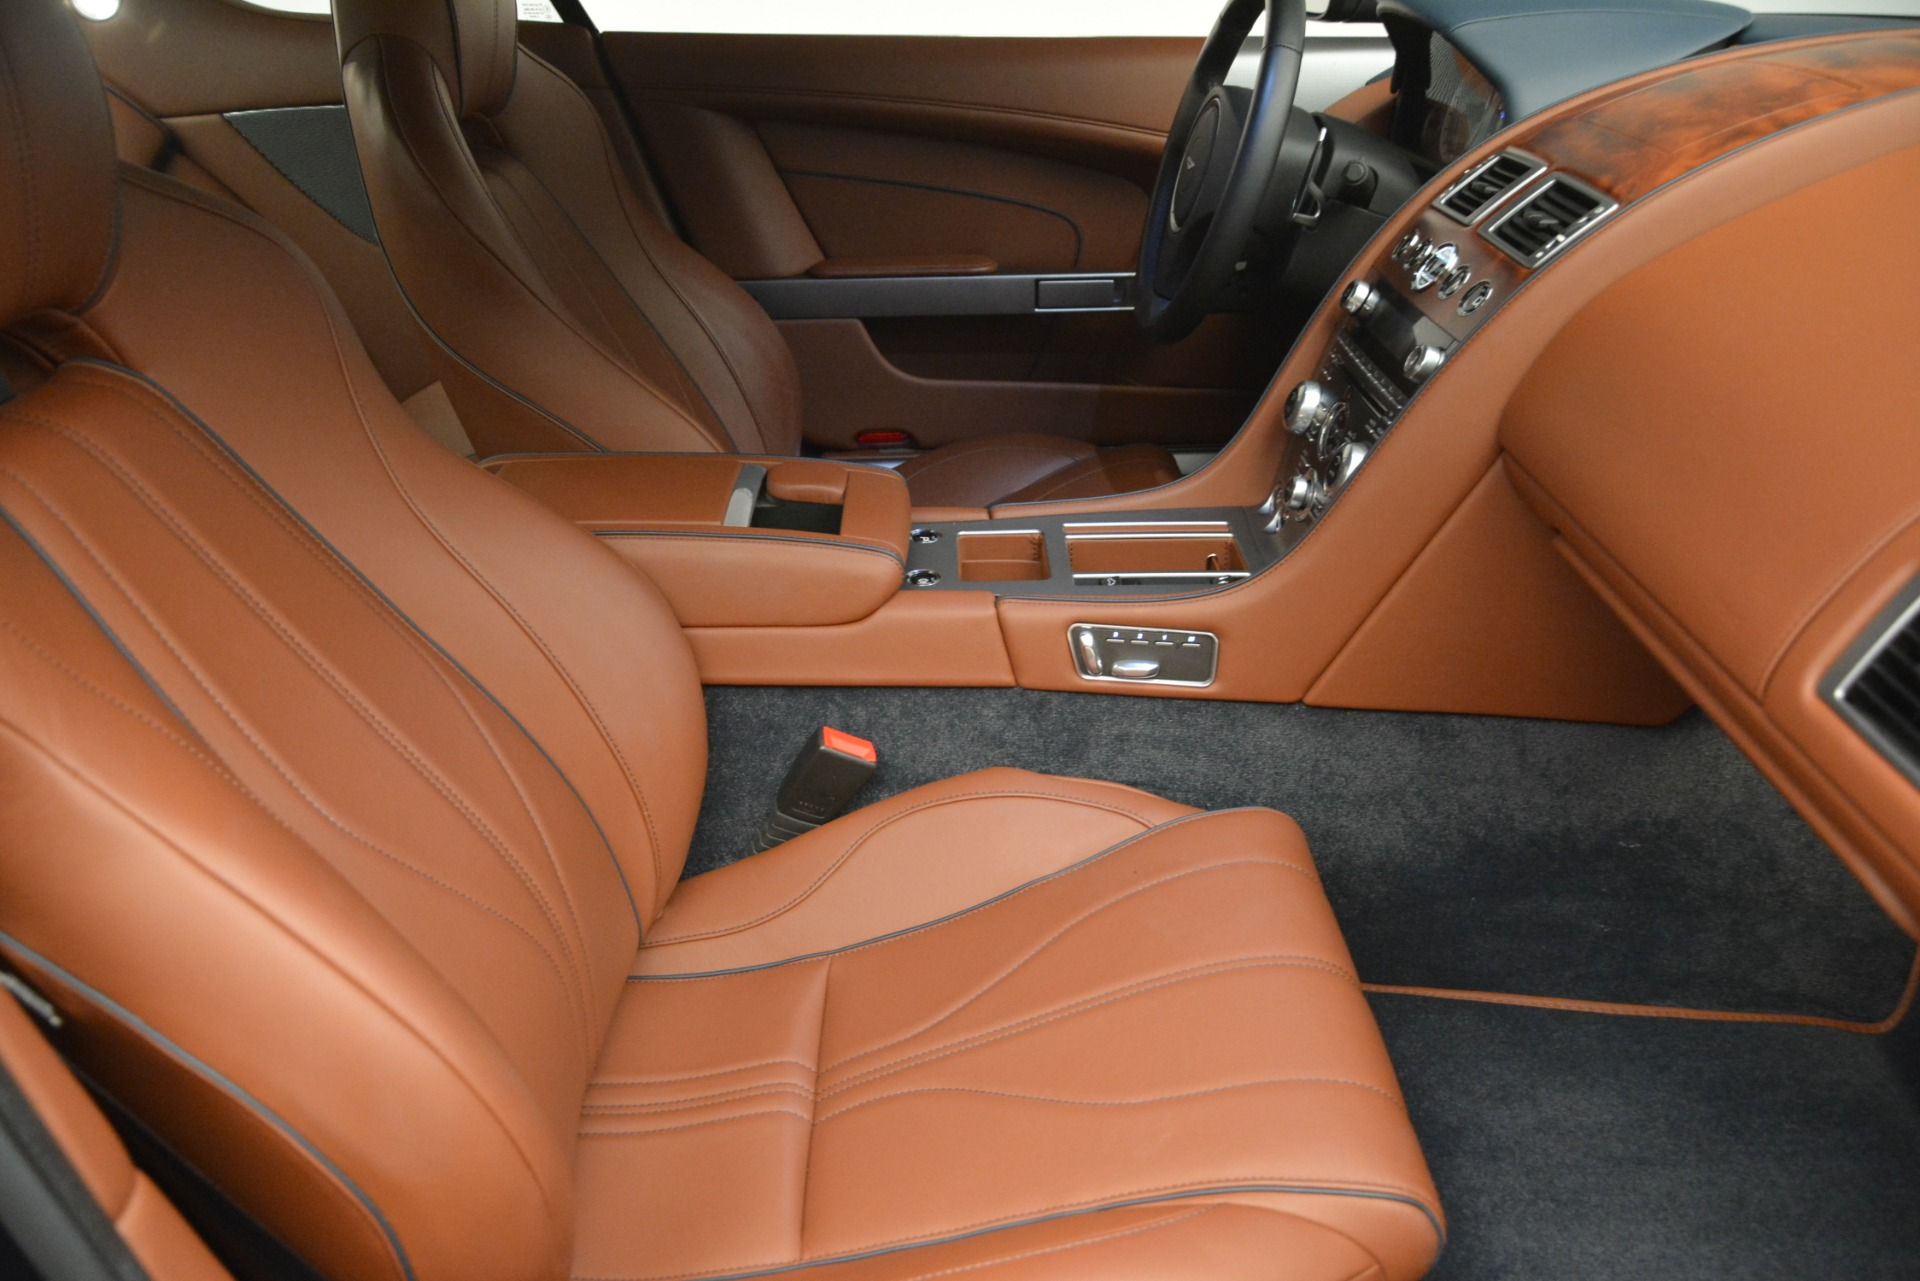 Used 2014 Aston Martin DB9 Coupe For Sale In Greenwich, CT 3010_p21